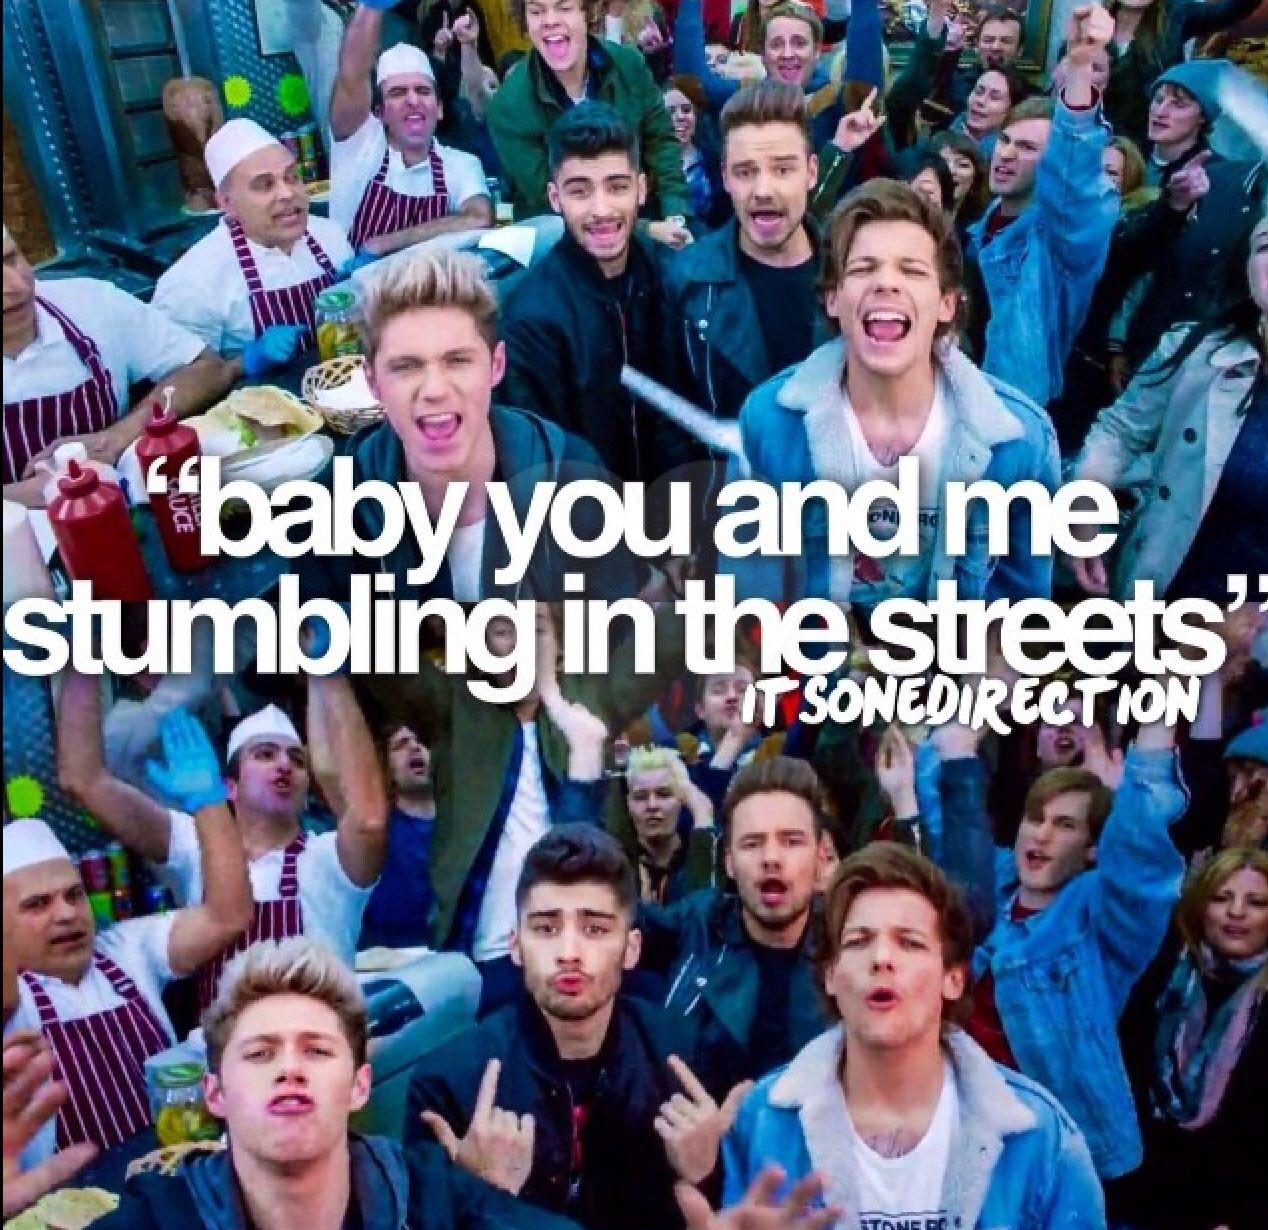 Midnight Memories music video. :) | Midnight memories, Music videos, Memories